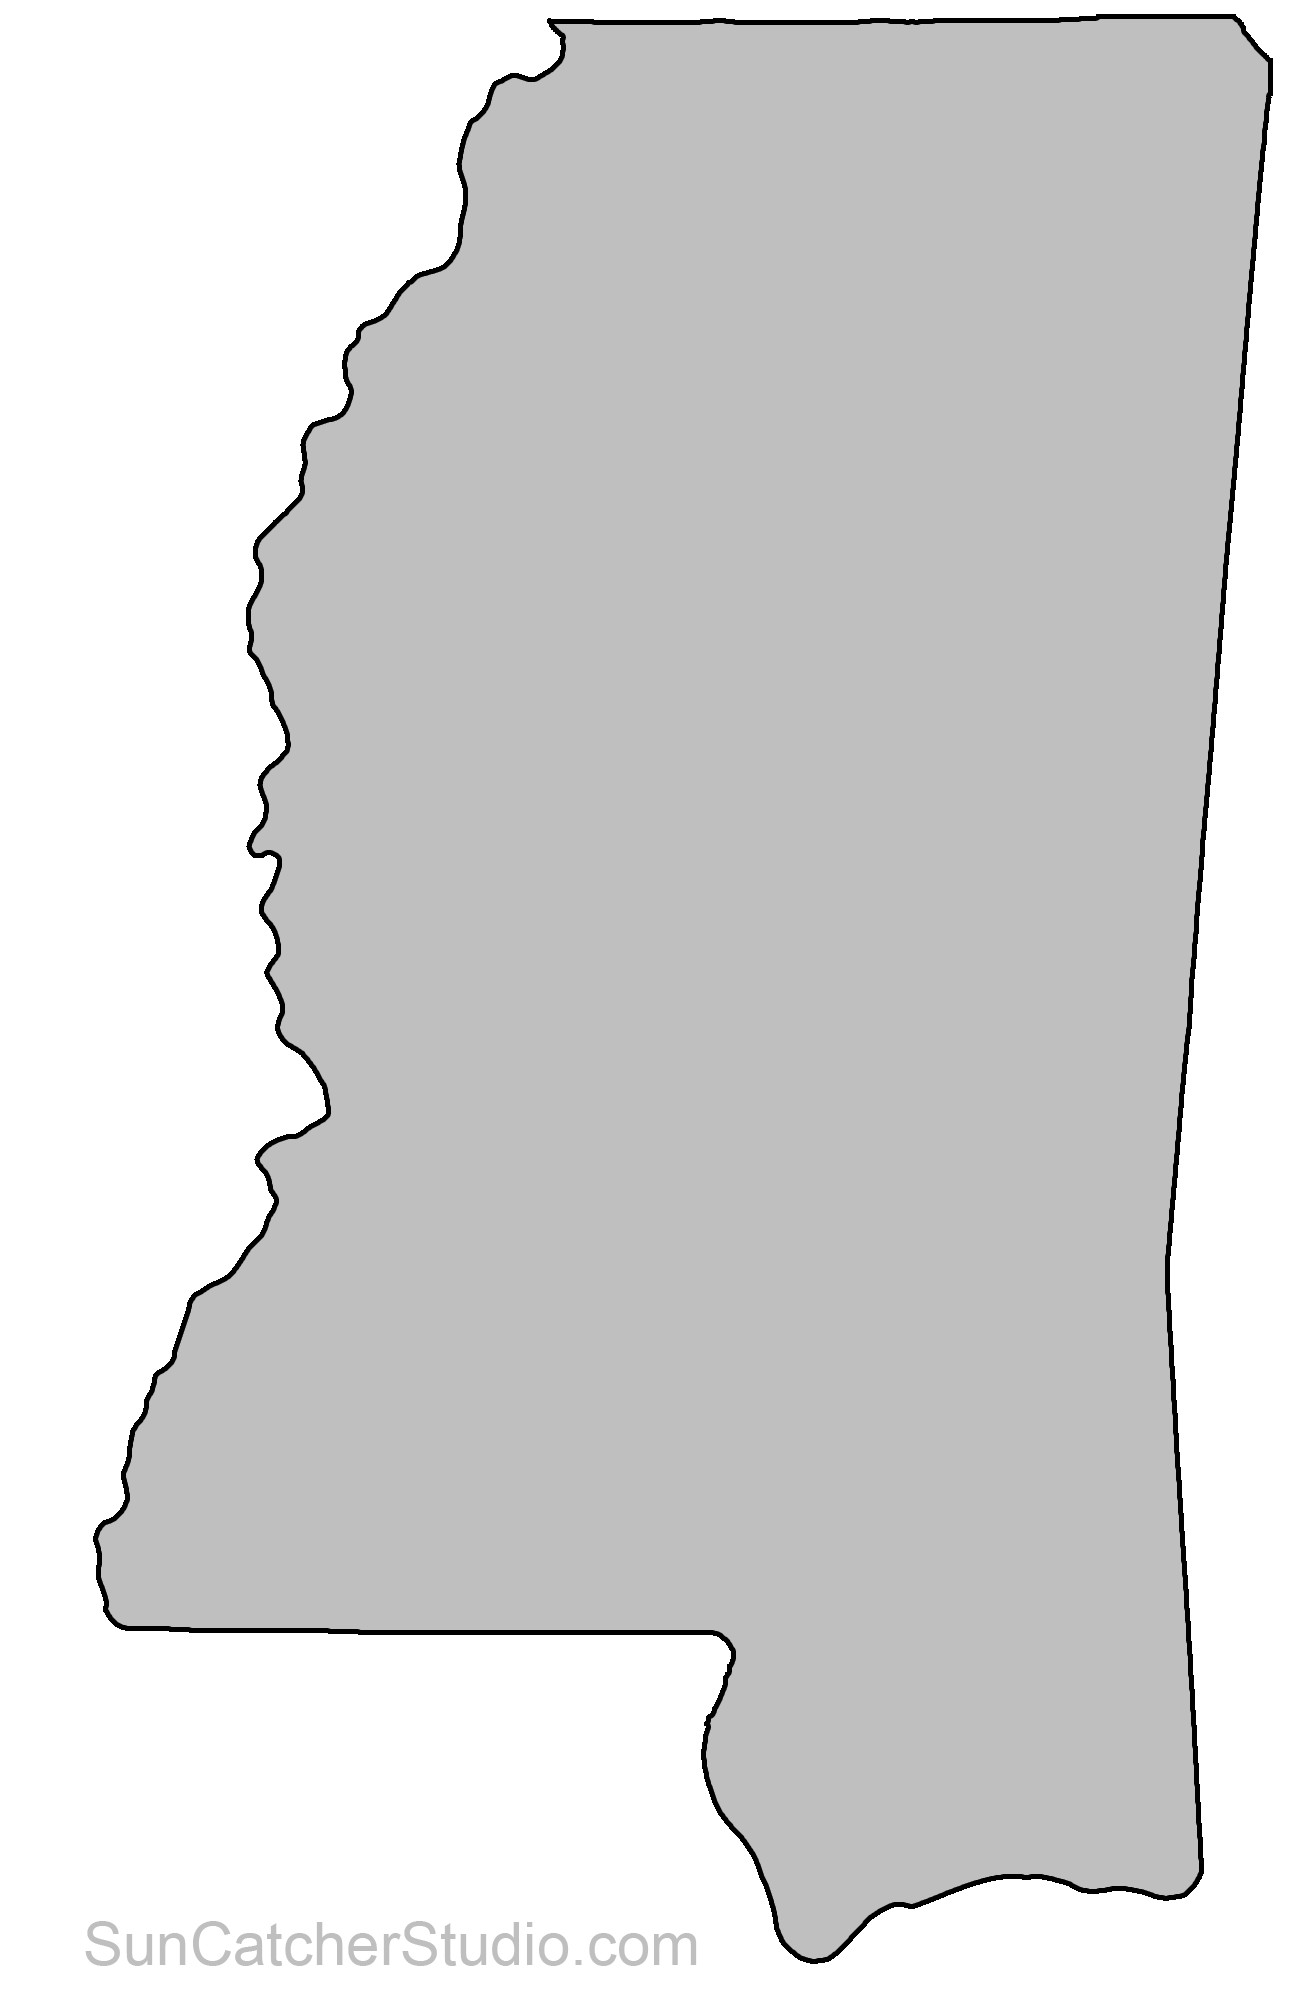 clip art stock Alabama clipart shape. State outlines maps stencils.